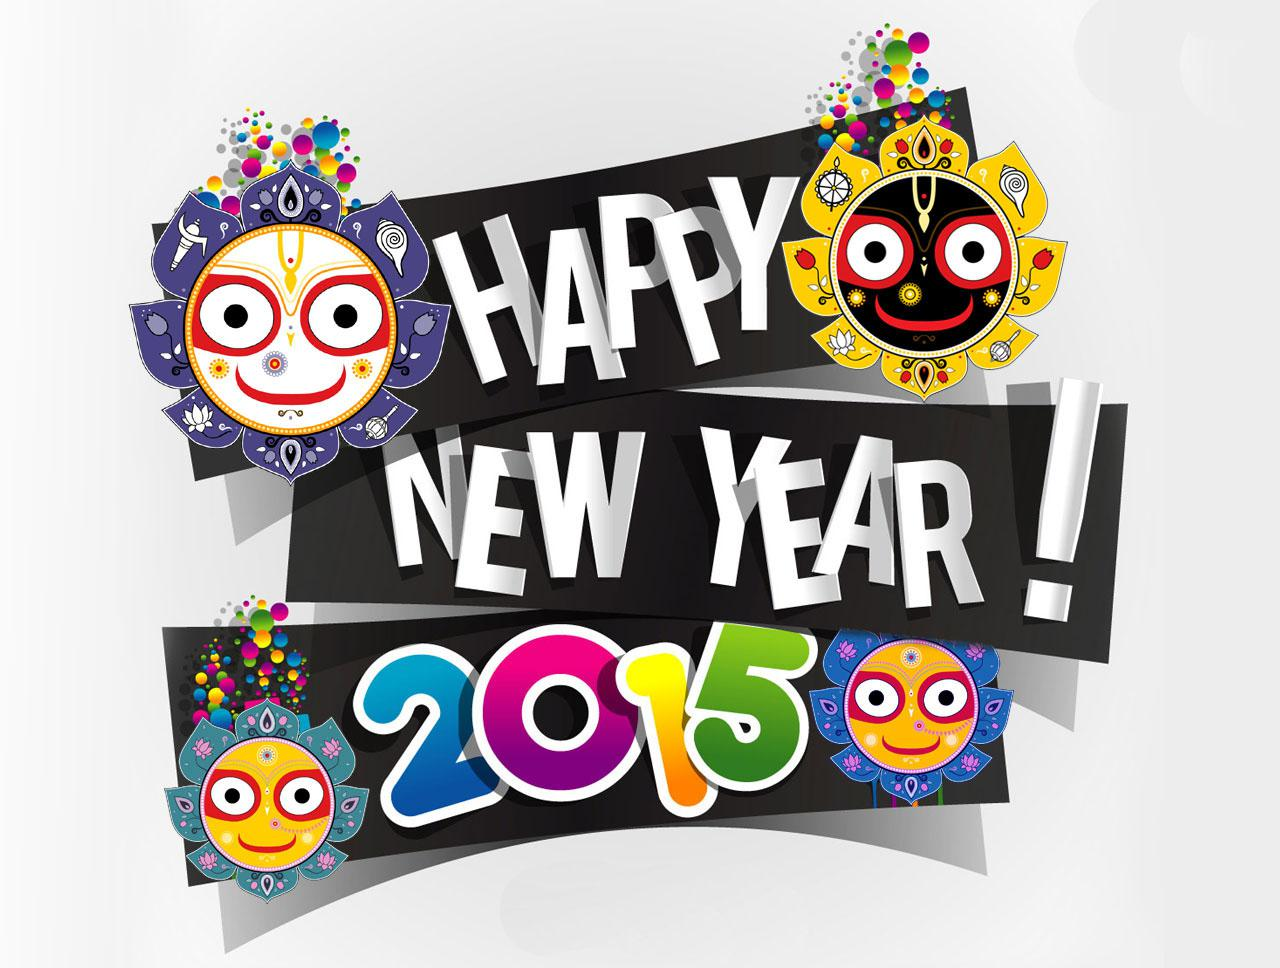 New Year Free Clipart  Free download best New Year Free